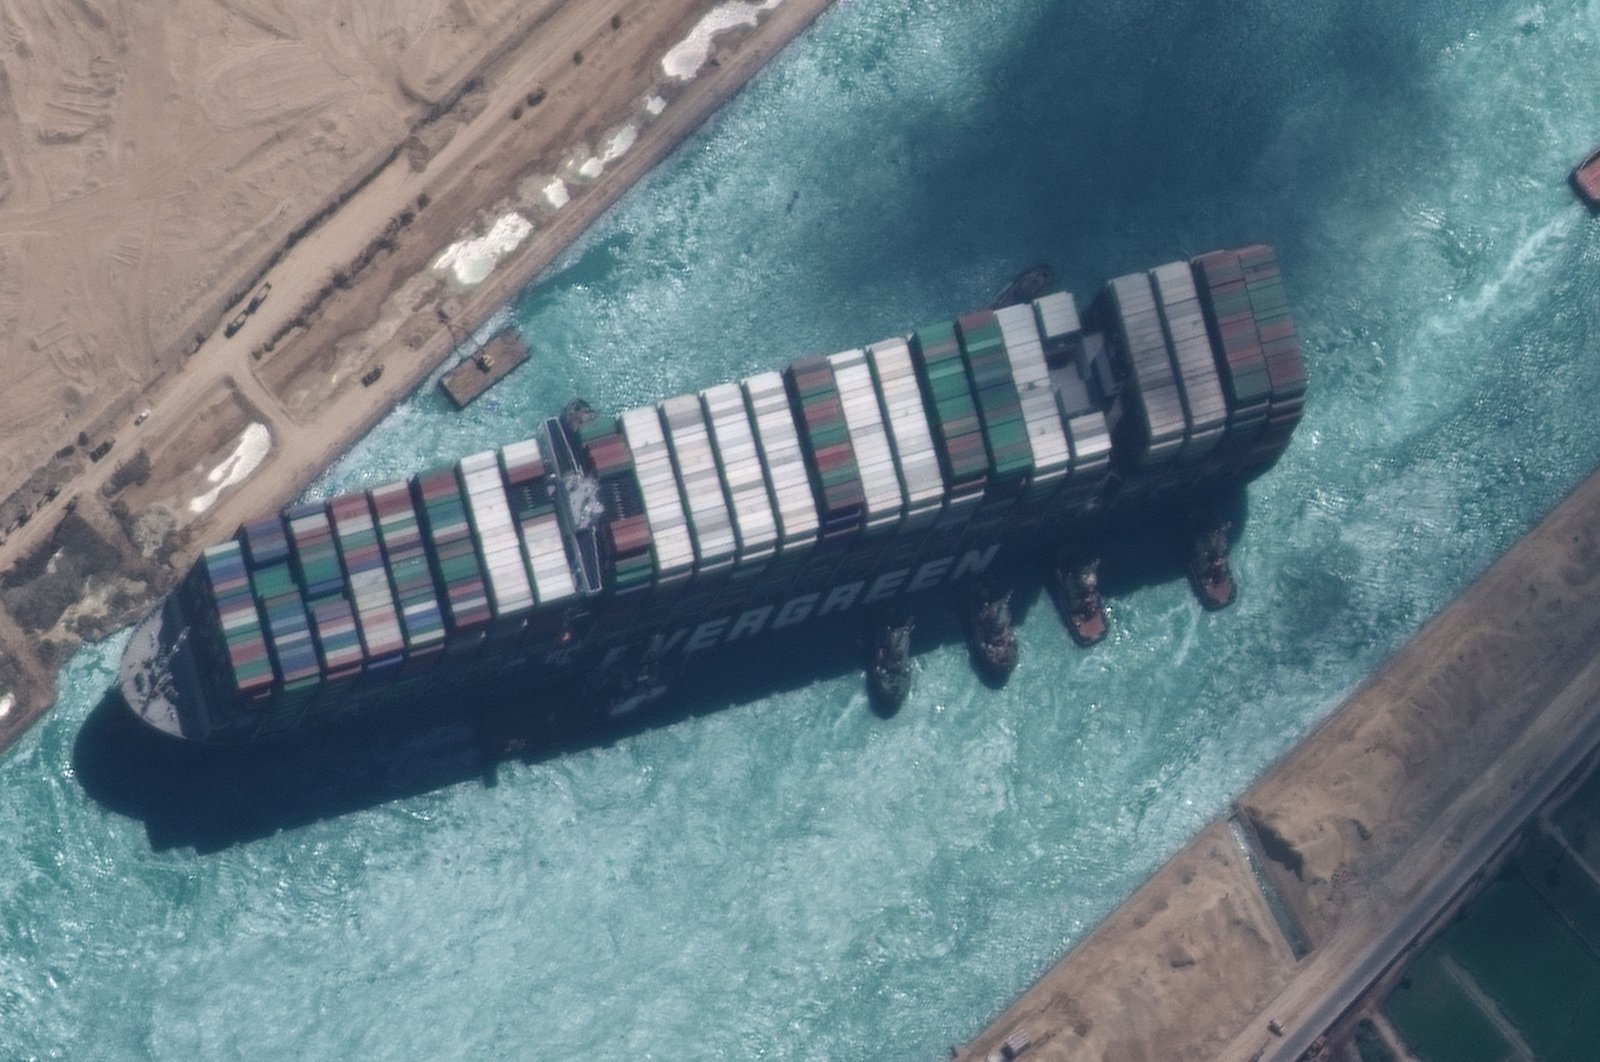 Tugboats try to reposition the Ever Given container ship in the Suez Canal, Egypt, March 29, 2021. (MAXAR Technologies via EPA)